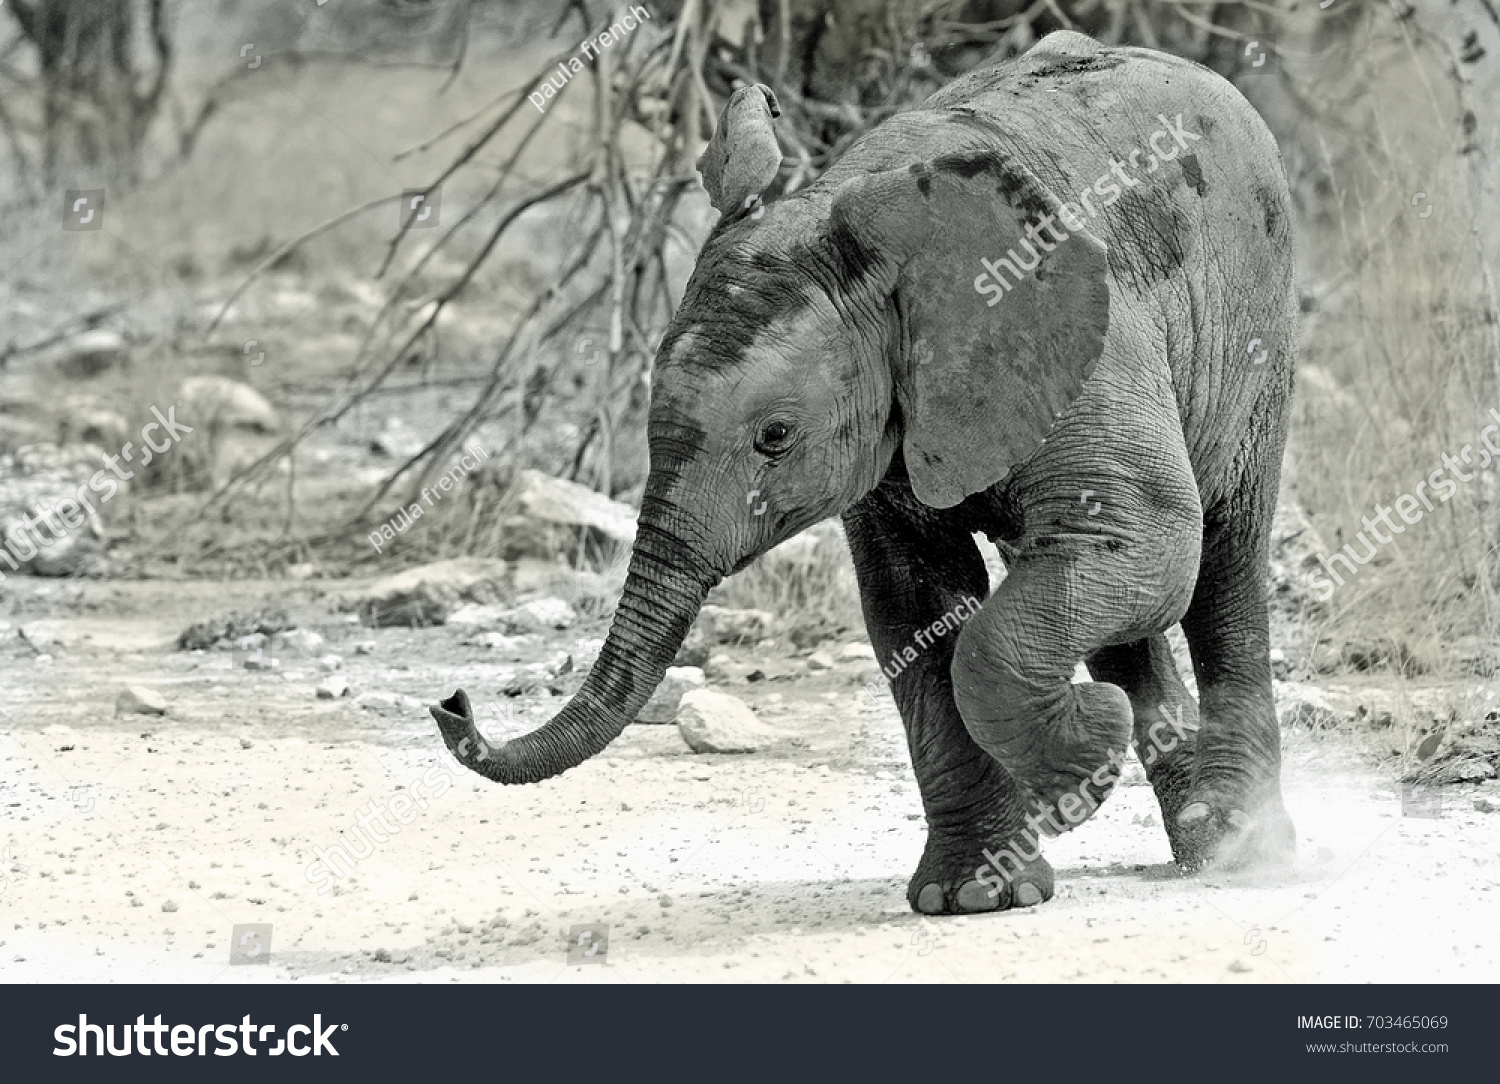 Baby Elephant with one leg lifted and trunk in the air - Hwange National Park, Zimbabwe.  Visible motion blur is detected in from leg